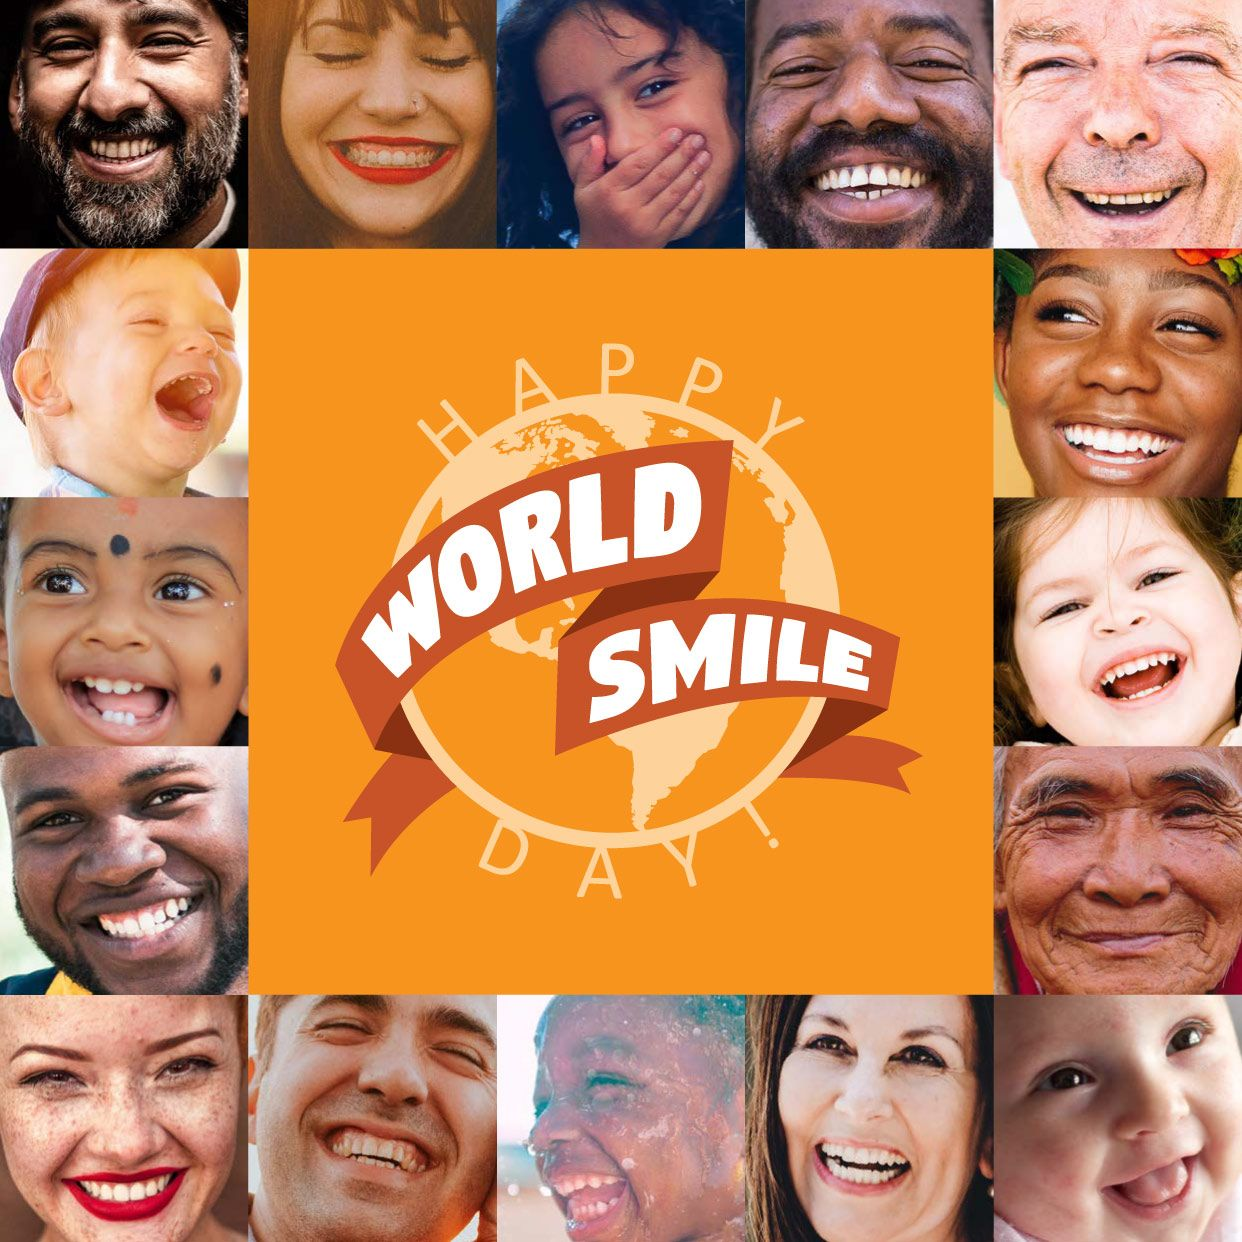 Happy world smile day who will you share your smile with